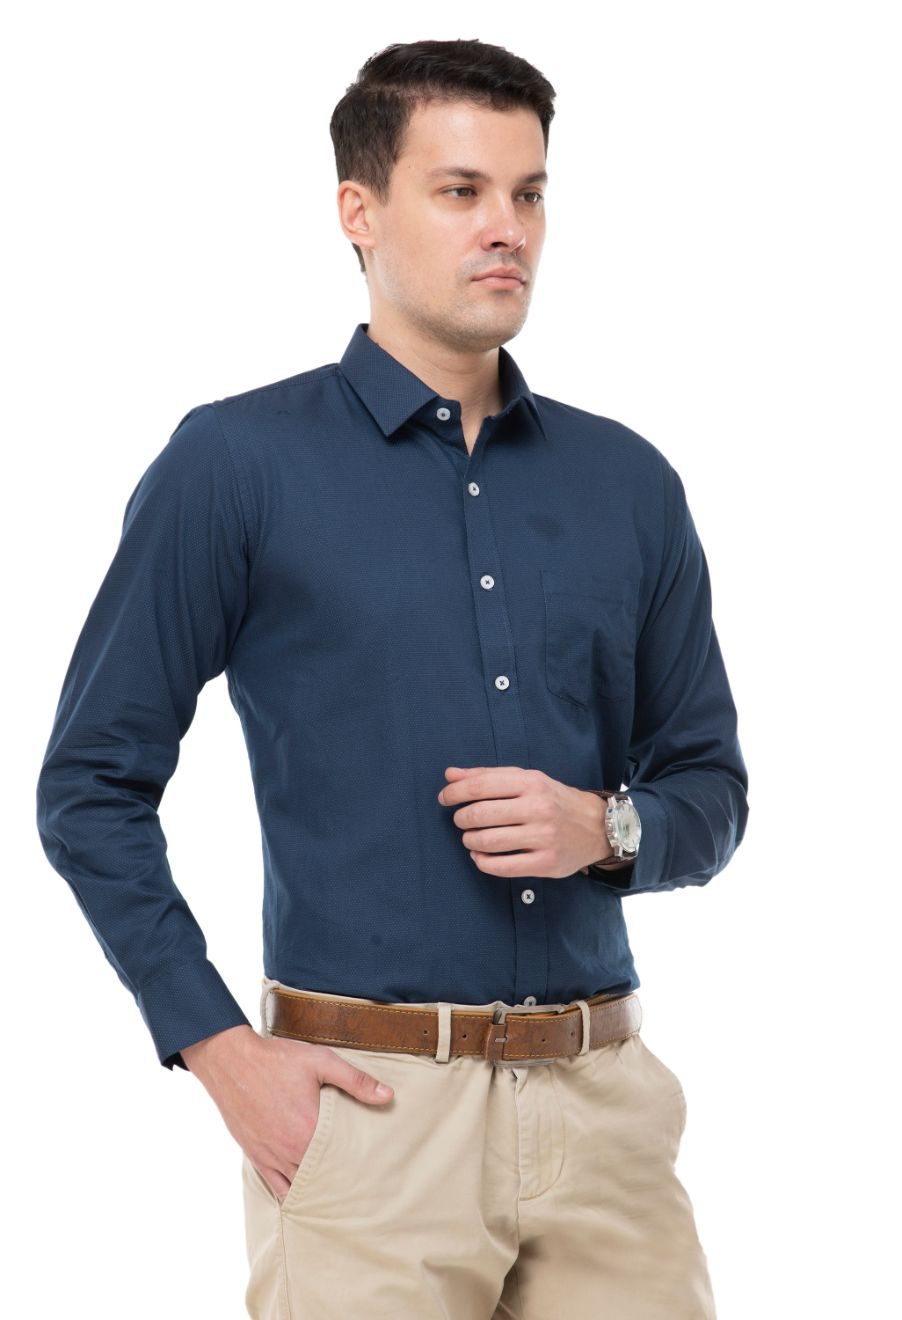 Blue with mustard dot  shirt has a long sleeves , 1 pocket, spread collar and curved hem-ATM-AU218M